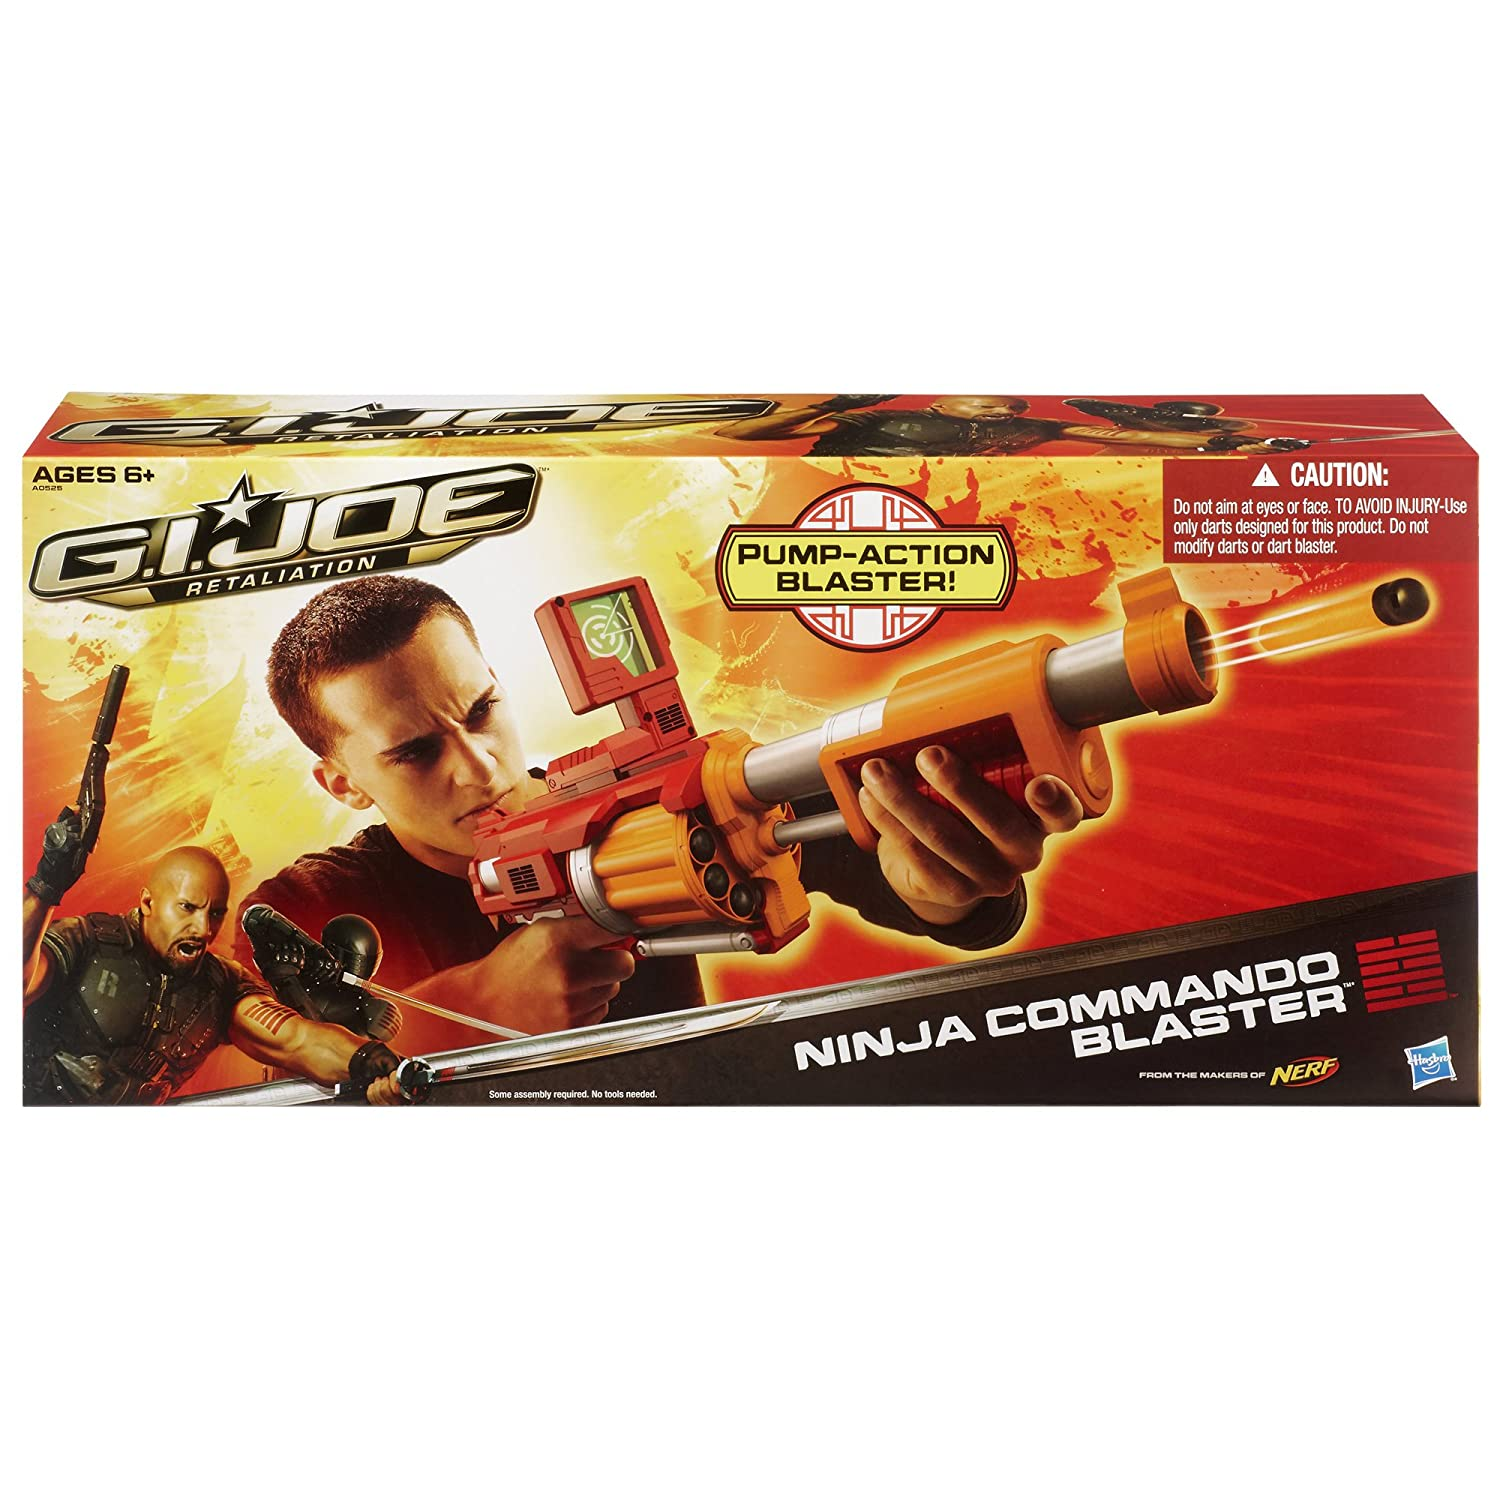 GI Joe Retaliation - Ninja Commando Blaster From The Makers Of Nerf